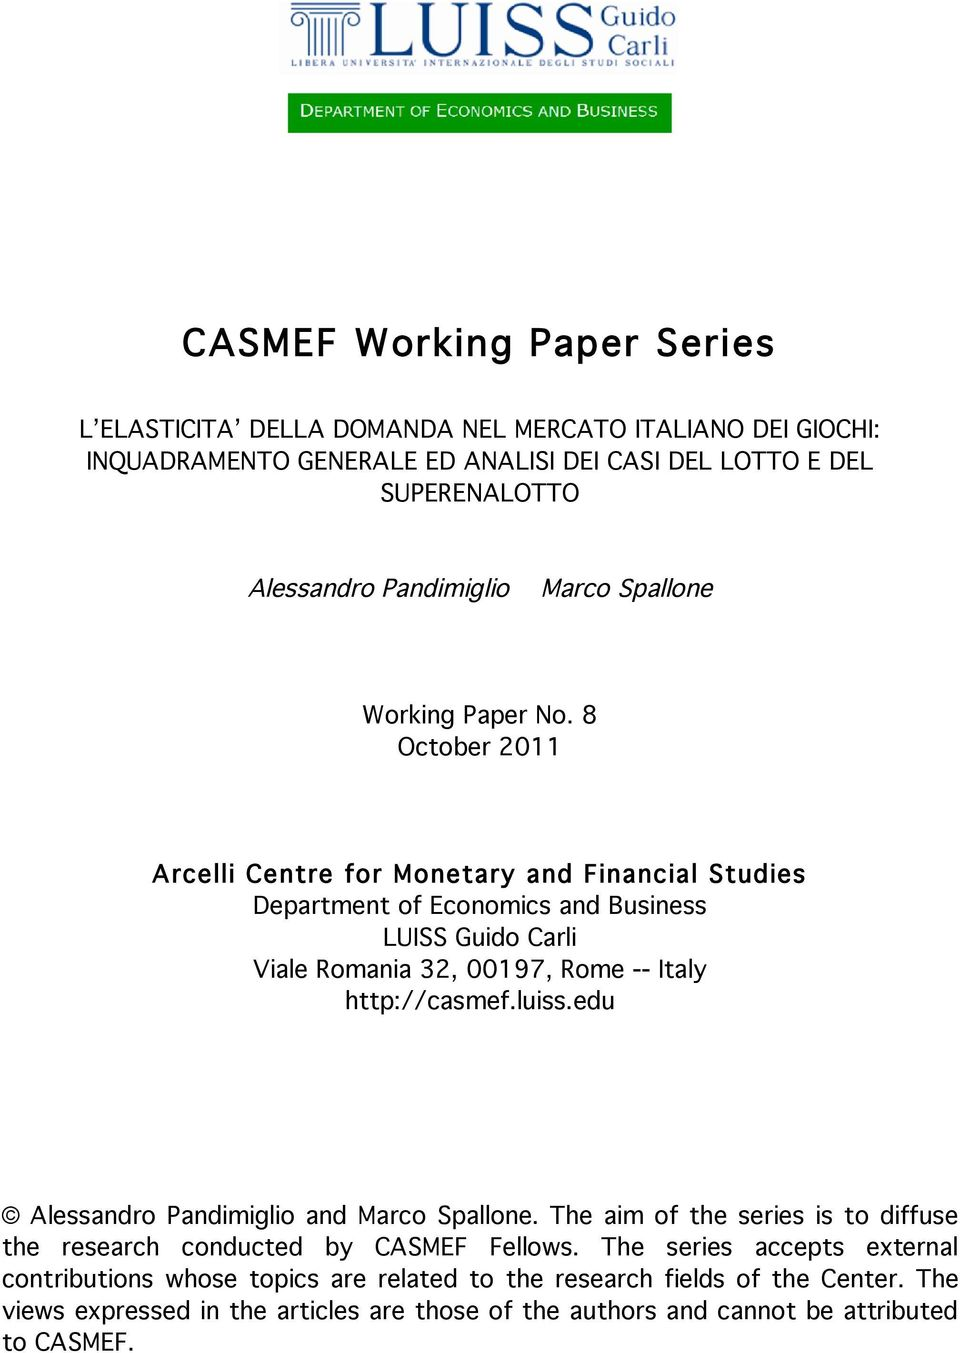 8 October 2011 Arcelli Centre for Monetary and Financial Studies Department of Economics and Business LUISS Guido Carli Viale Romania 32, 00197, Rome -- Italy http://casmef.luiss.